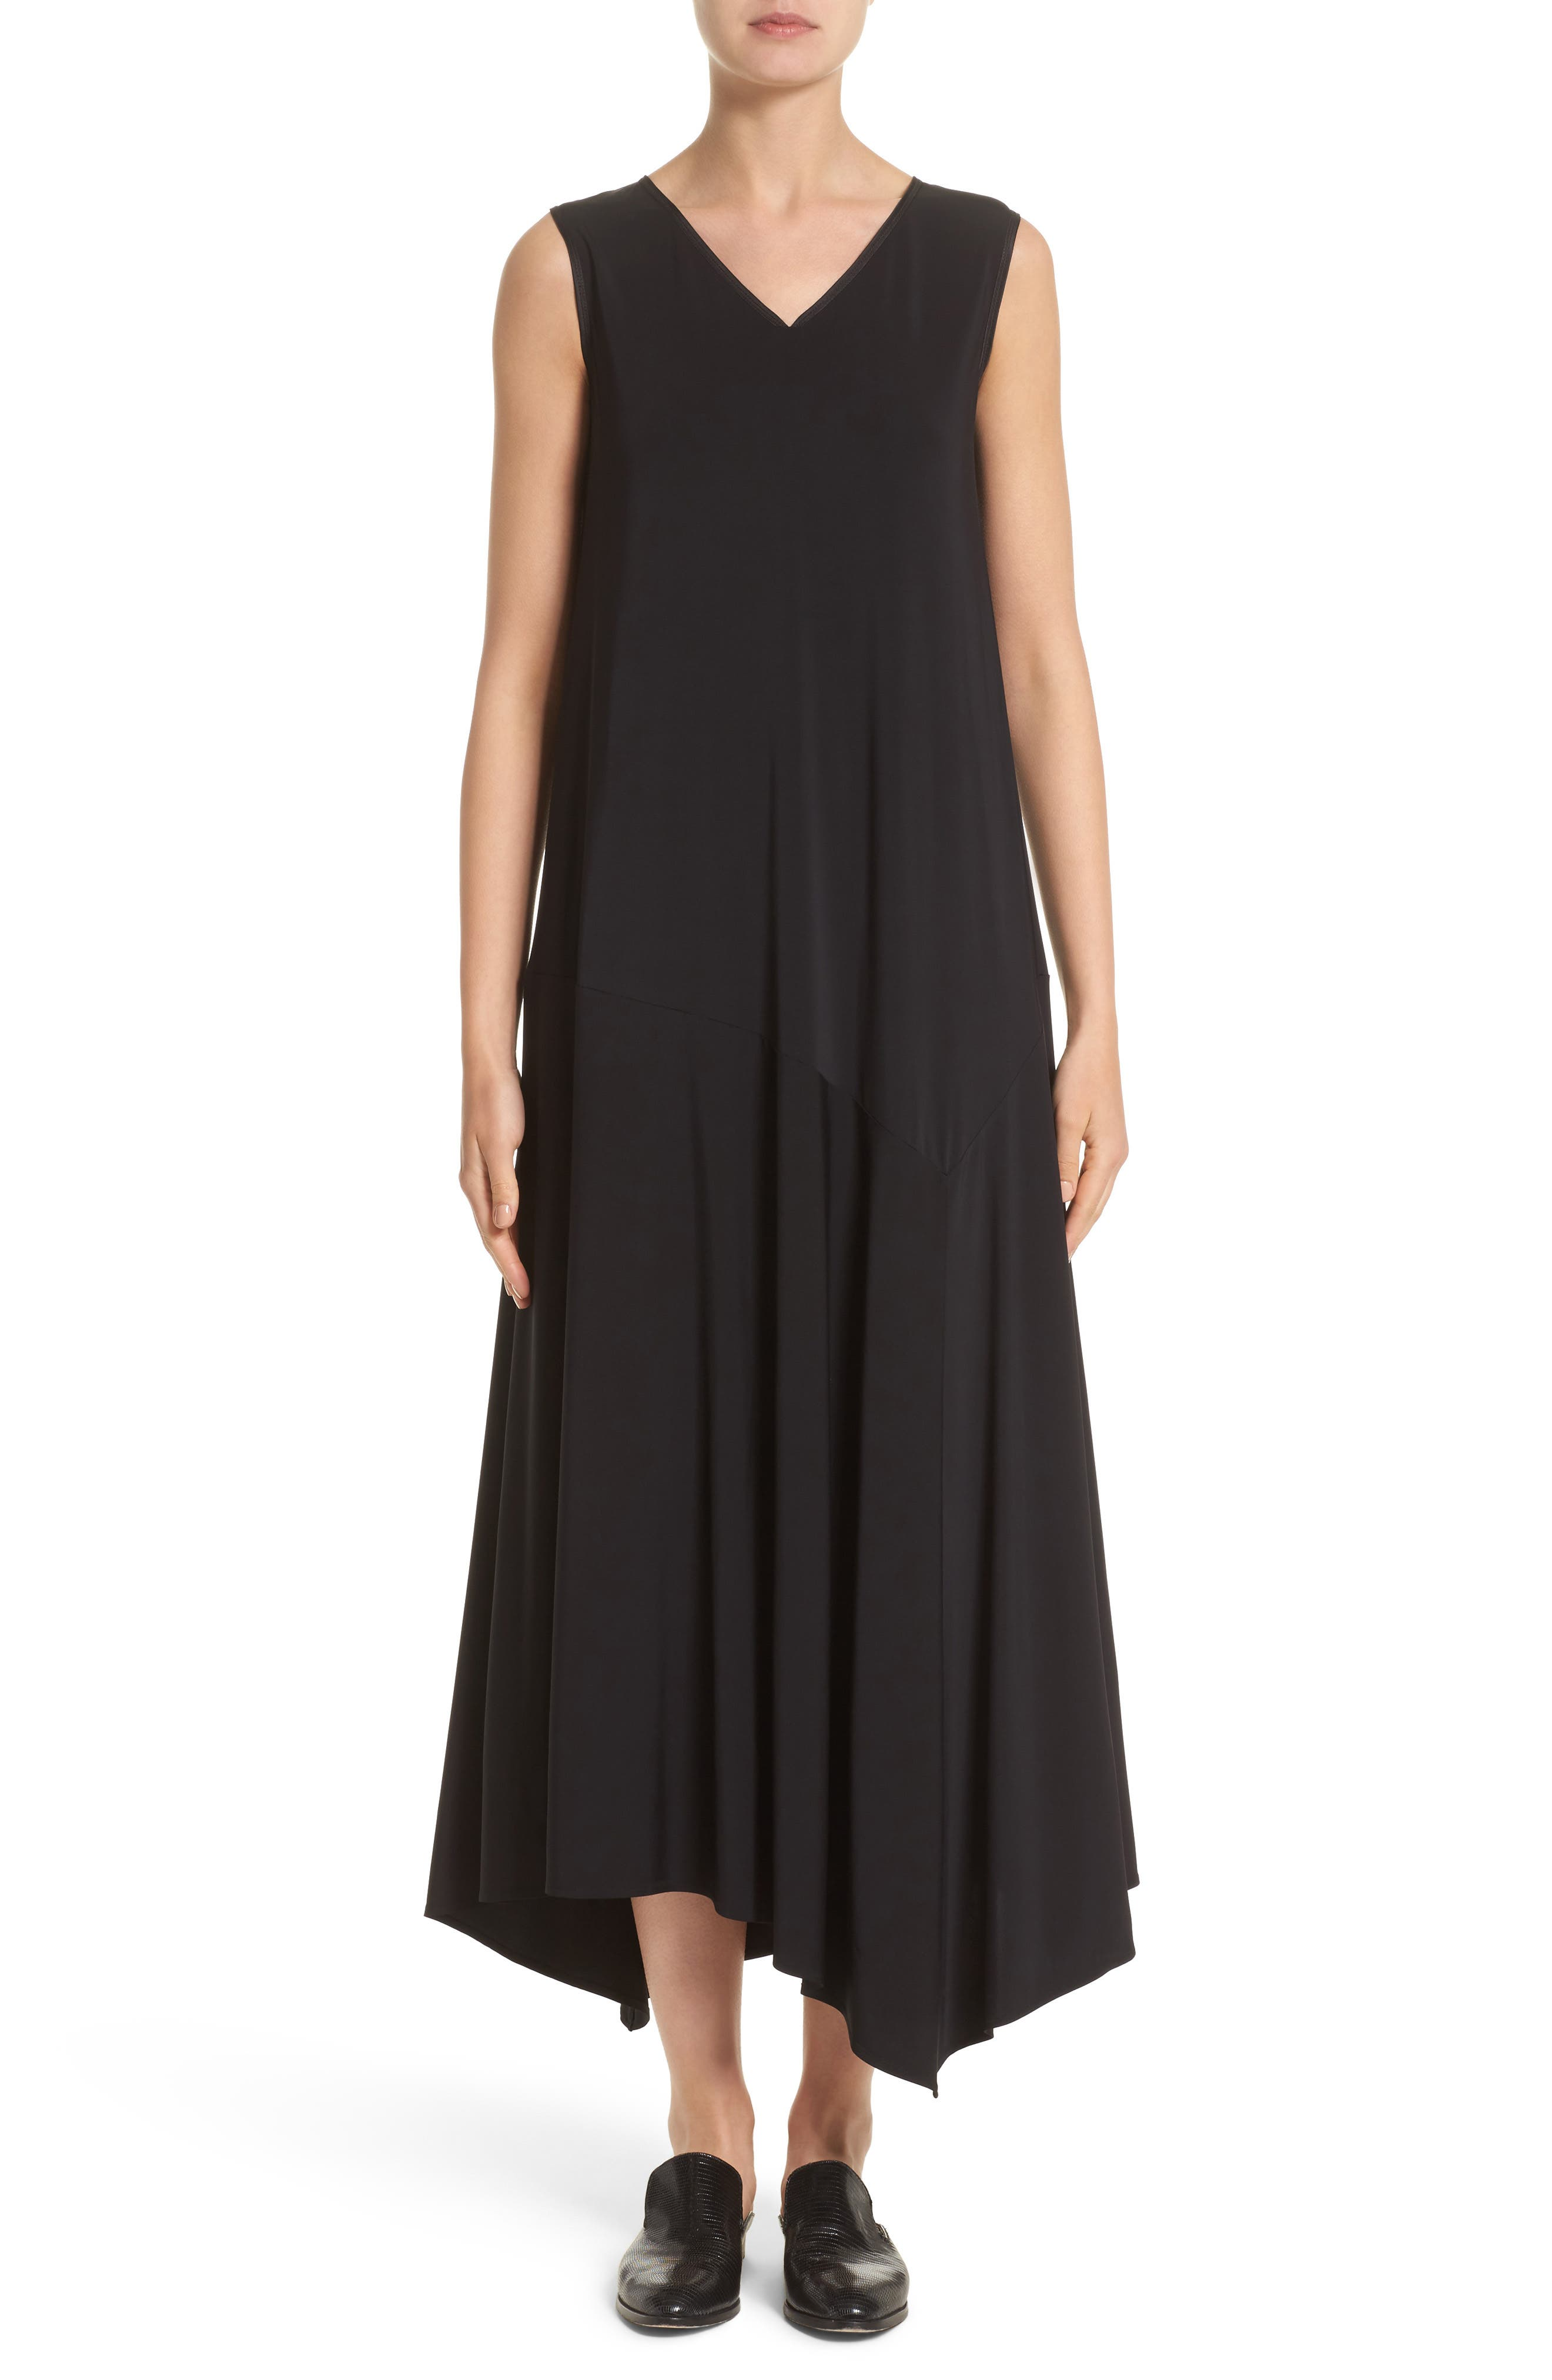 Cultivated Crepe Jersey Asymmetrical Dress,                         Main,                         color, 001